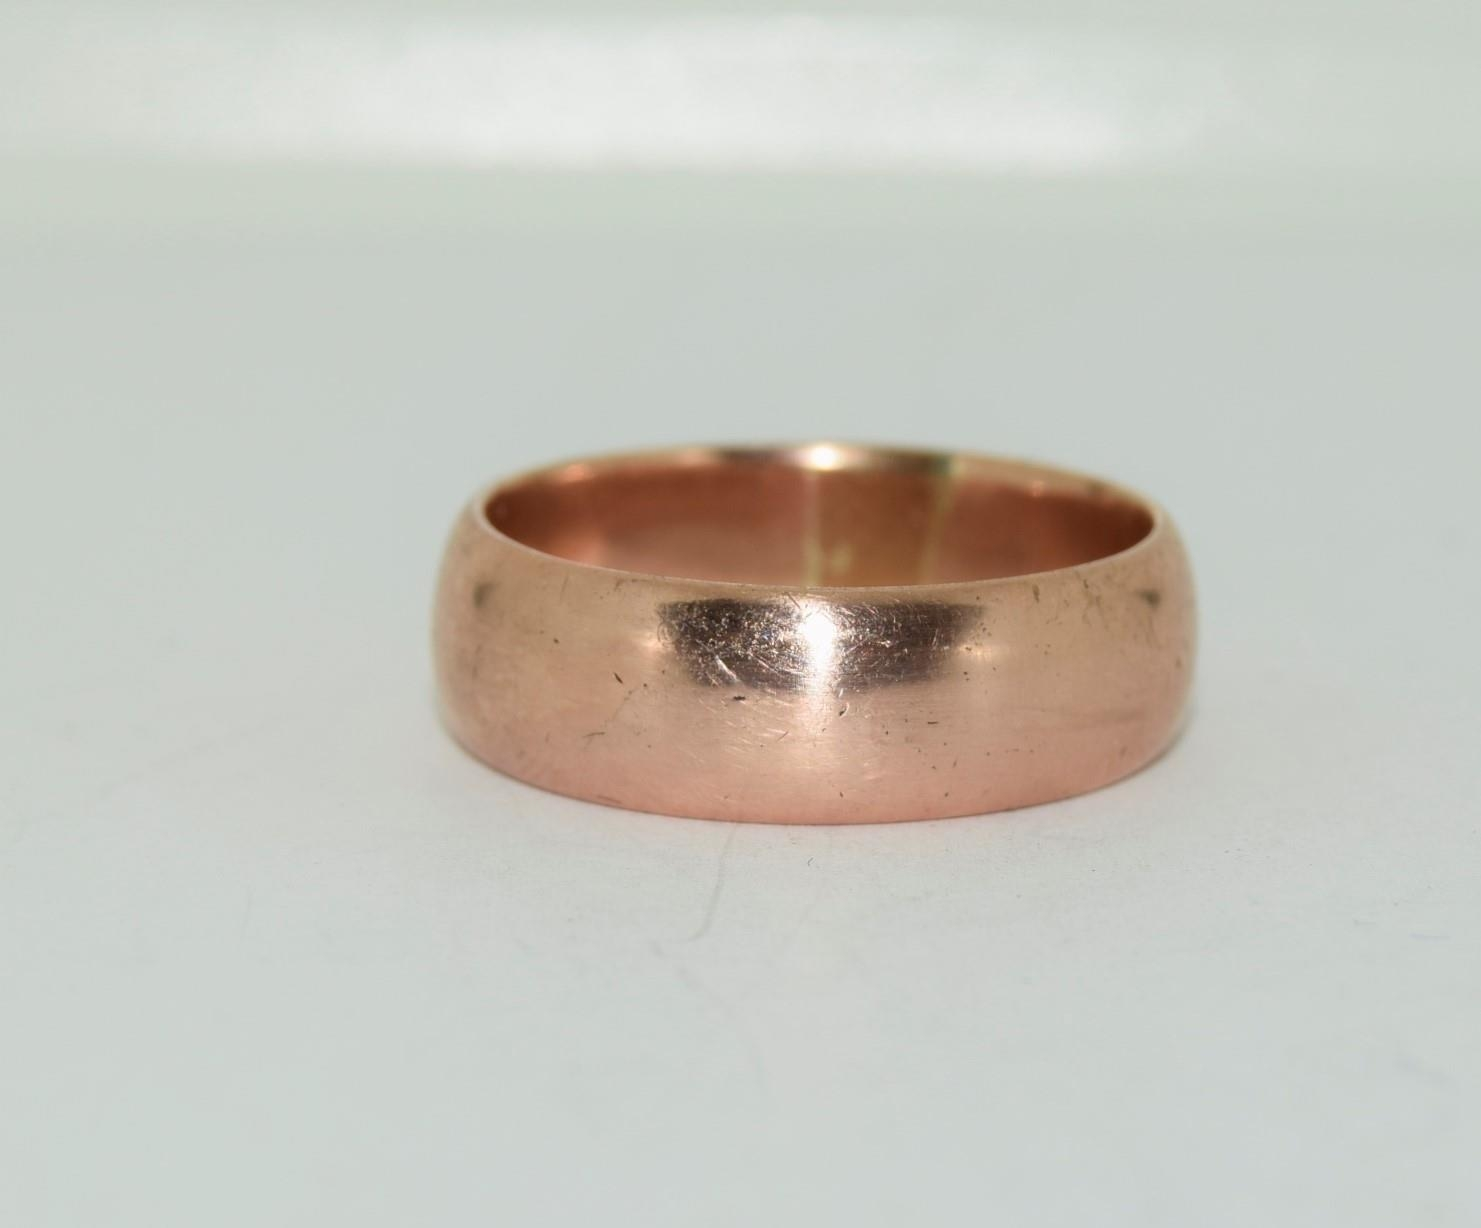 9ct gold mans wedding band size X 8.7gm - Image 2 of 6